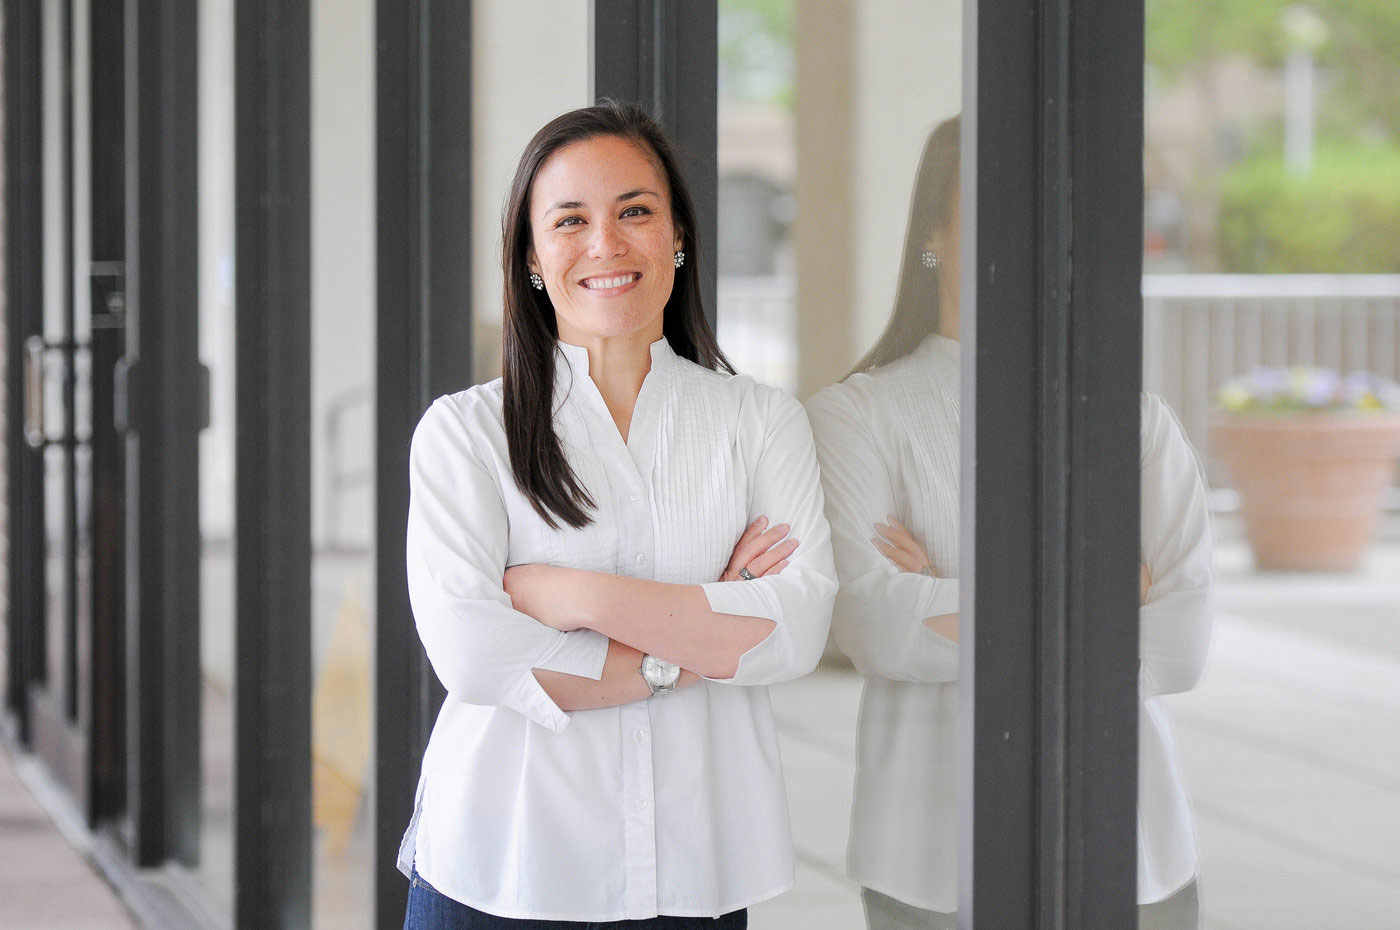 As Democratic nominee, Gina Ortiz Jones came extremely close to becoming the first Fil-Am woman in the US House of Representatives last year. Ana Isabel Photography